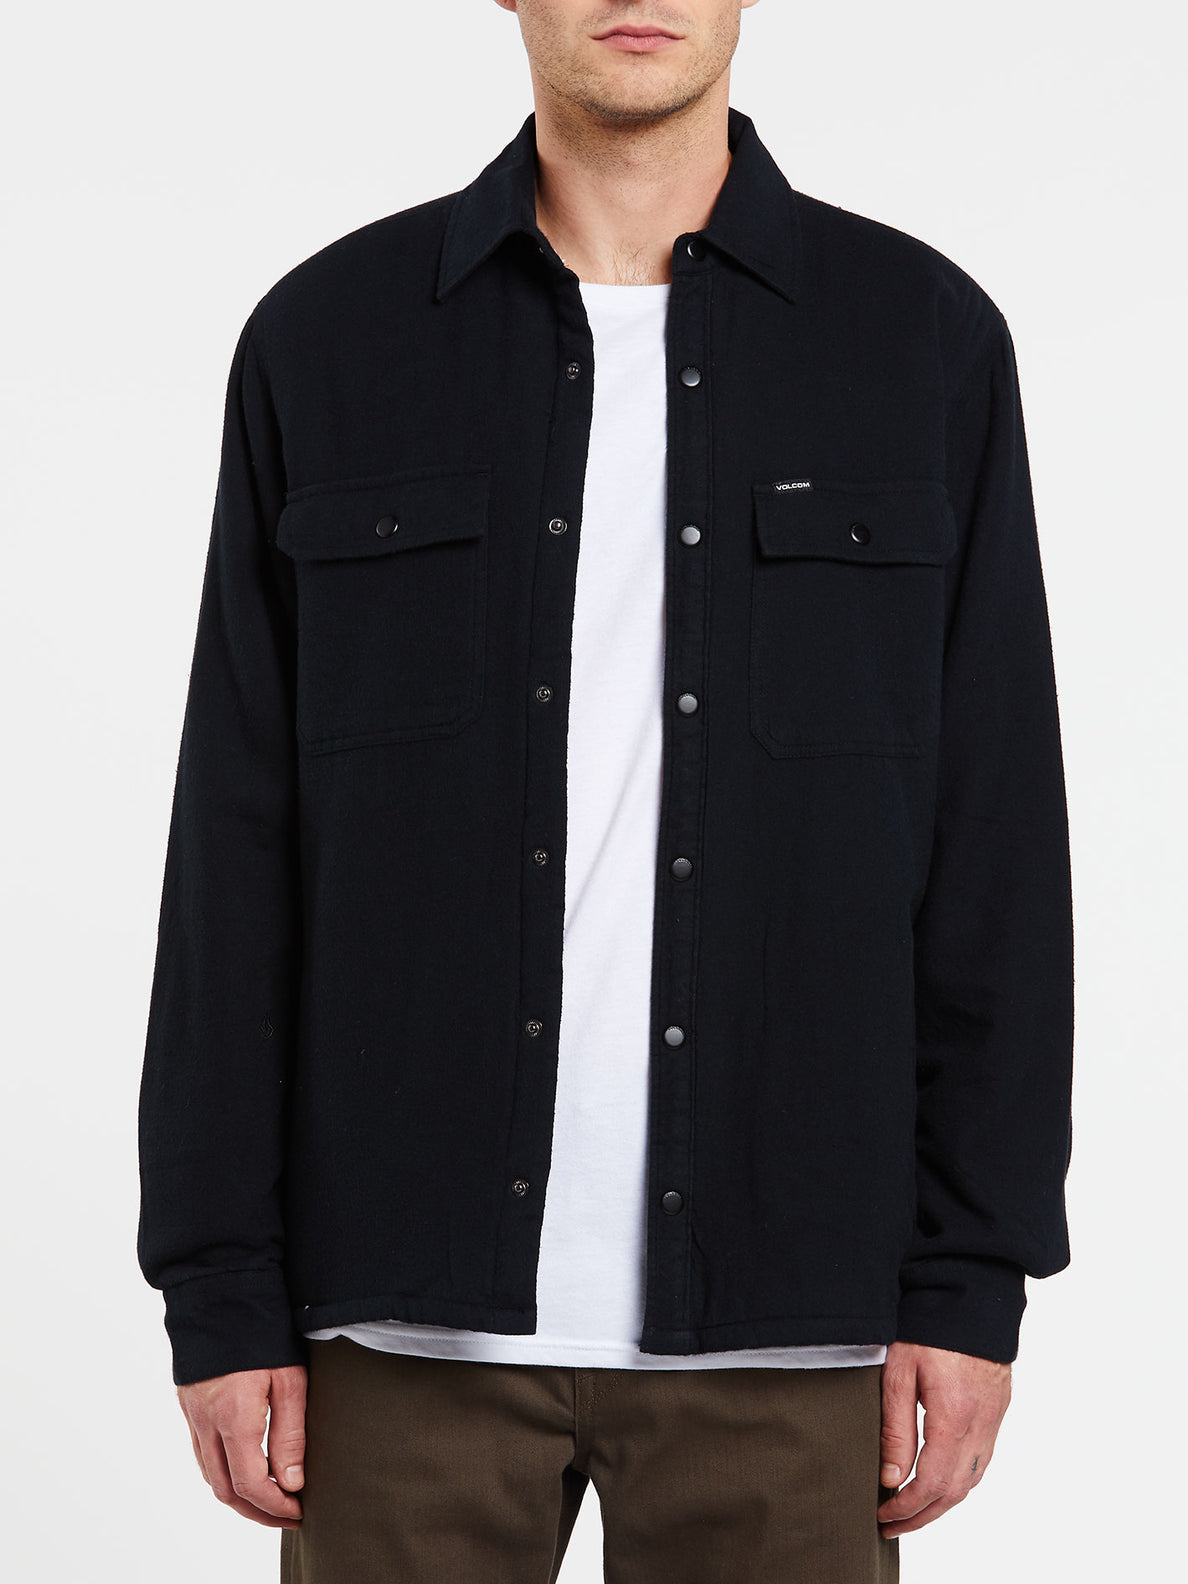 Larkin Jacket - Black (A1632002_BLK) [1]